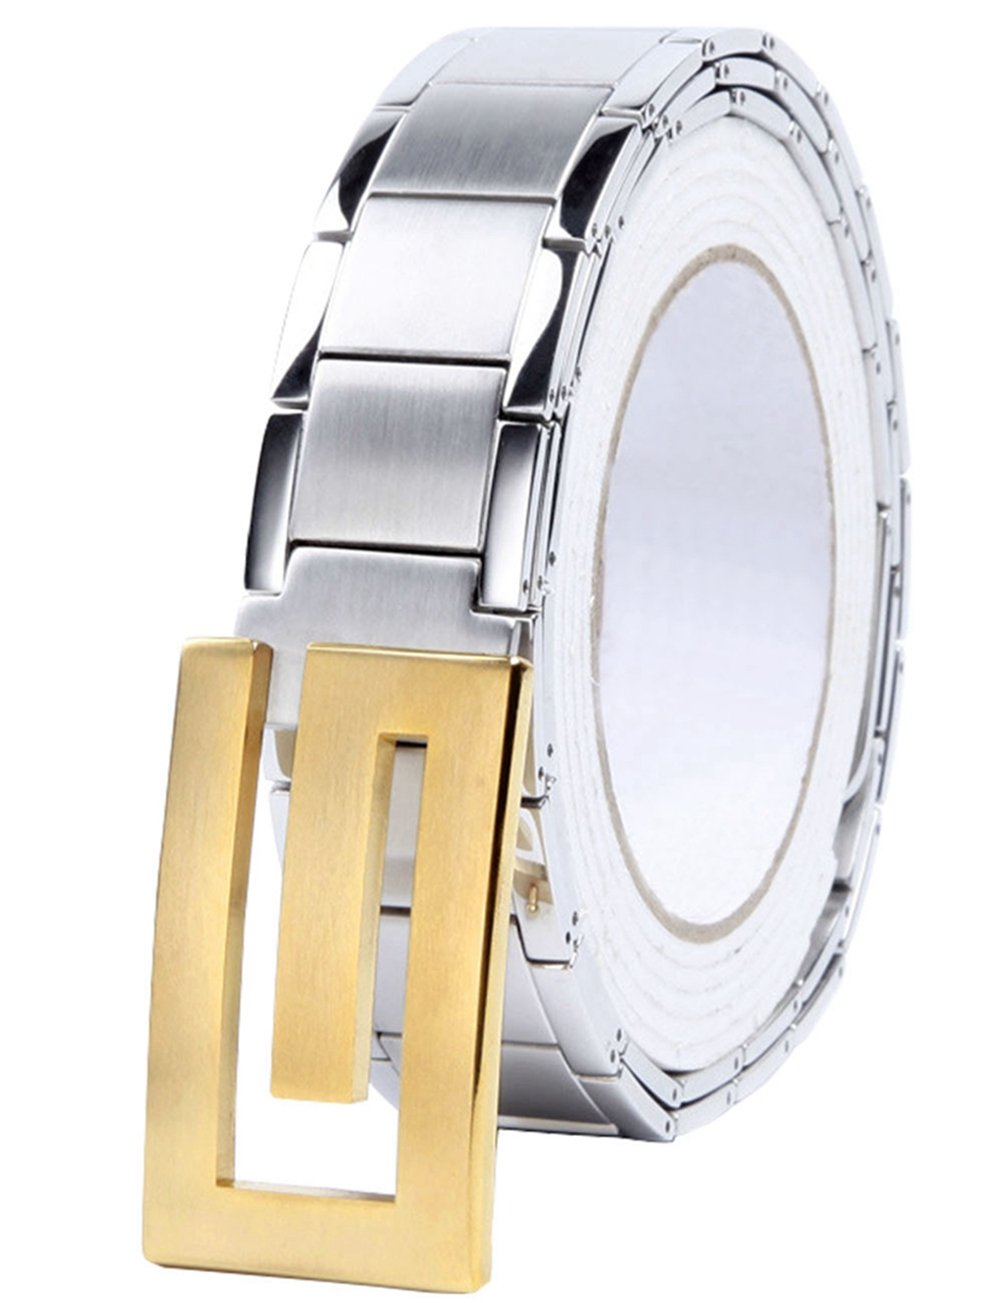 Menschwear Men's Stainless Steel Belt Slide Buckle Adjustable 32mm 146 Golden 120cm